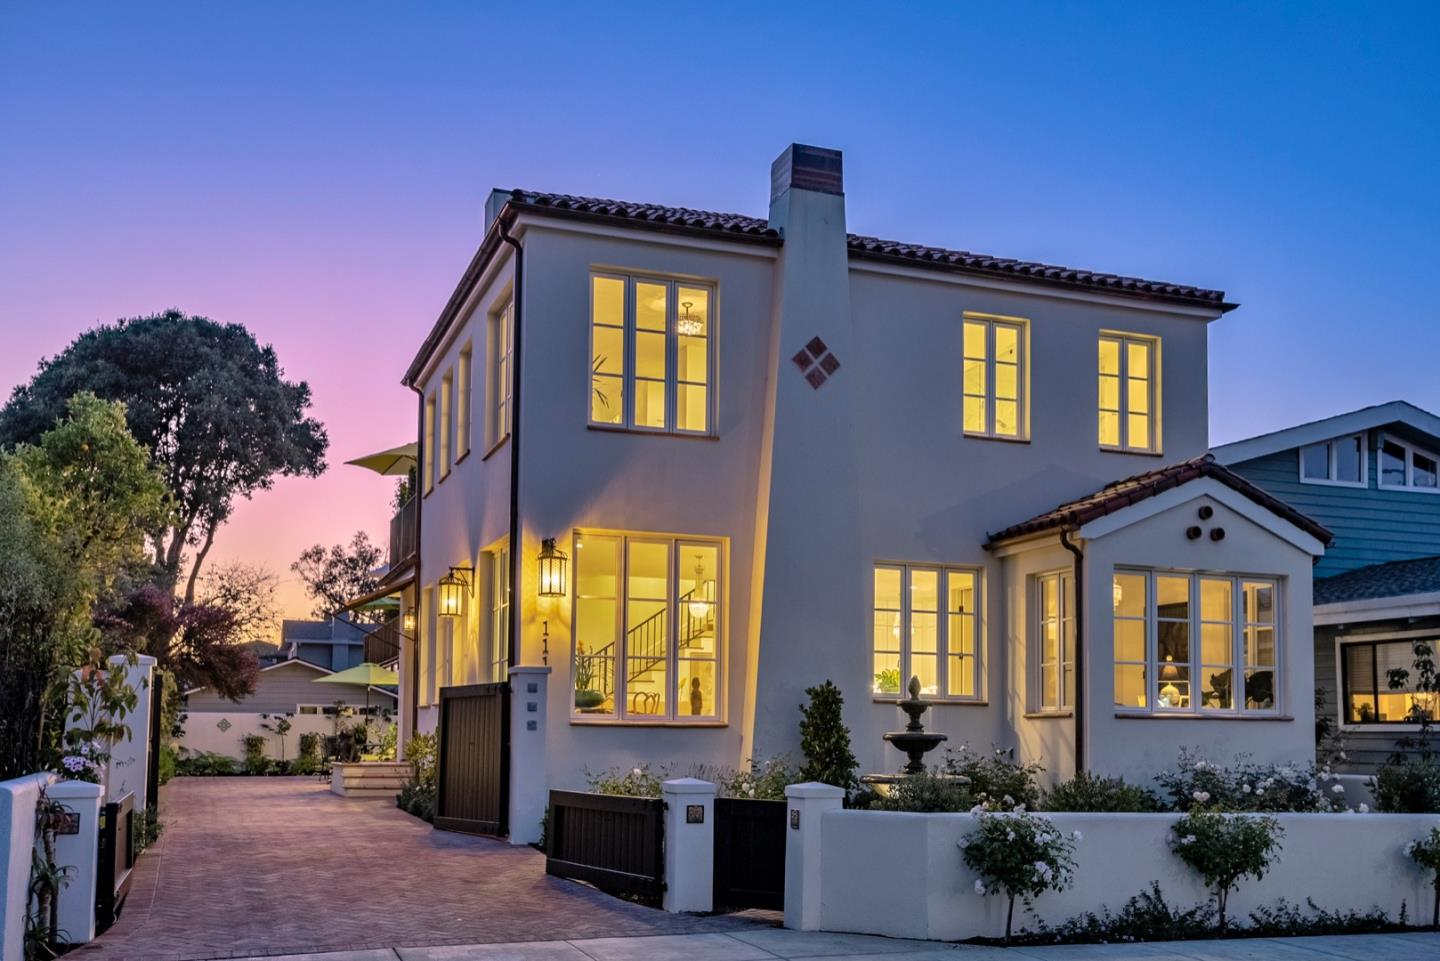 In the heart of Santa Cruz, one block from the Lighthouse, discover this unique and brand new Mediterranean masterpiece finished  to perfection in July 2019*This brand new custom home is approximately 3,904 SQFT w/ five enormous bedrooms, four interior designer bathrooms, a spectacular open floor plan, & a separate guest house w/ kitchen & living room*This very rare new estate is only 1-2 minute walk to the ocean & world famous Steamers Lane surf break*Complete gated privacy*Every attention to detail includes superior custom interior designer contributions, custom doors & windows, contemporary/antique light fixtures, top appliances, hardwood floors, custom marble tile & countertops* Enormous three car garage, private front office, mud room, & the 5th bedroom could be a 2nd family room/bonus room*Master suite includes a tall glass steam shower & soaking tub*Radiant floors & abundant closets throughout*Expansive courtyard, gardens, patios, BBQ Area, gated privacy, and excellent parking!!